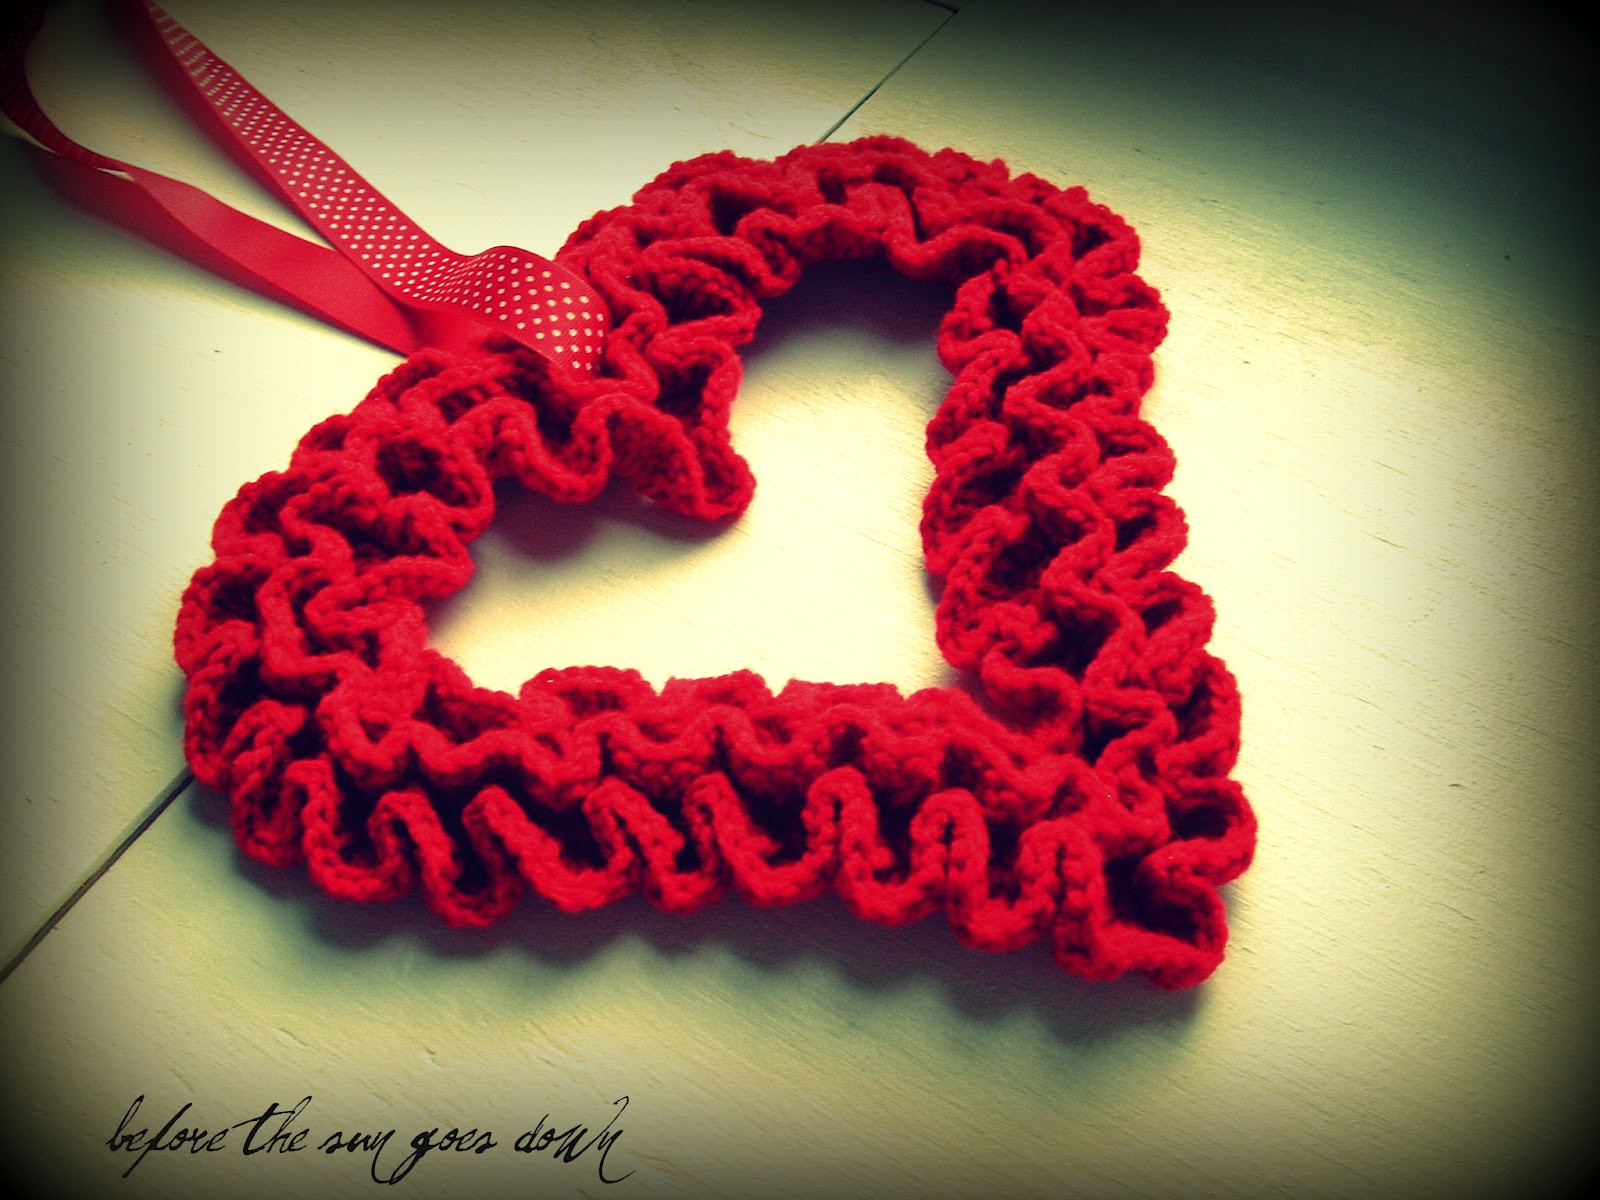 Free Valentine Crochet Patterns New Would You Like Yarn with that Crochet Ruffle Valentine Of Perfect 46 Ideas Free Valentine Crochet Patterns